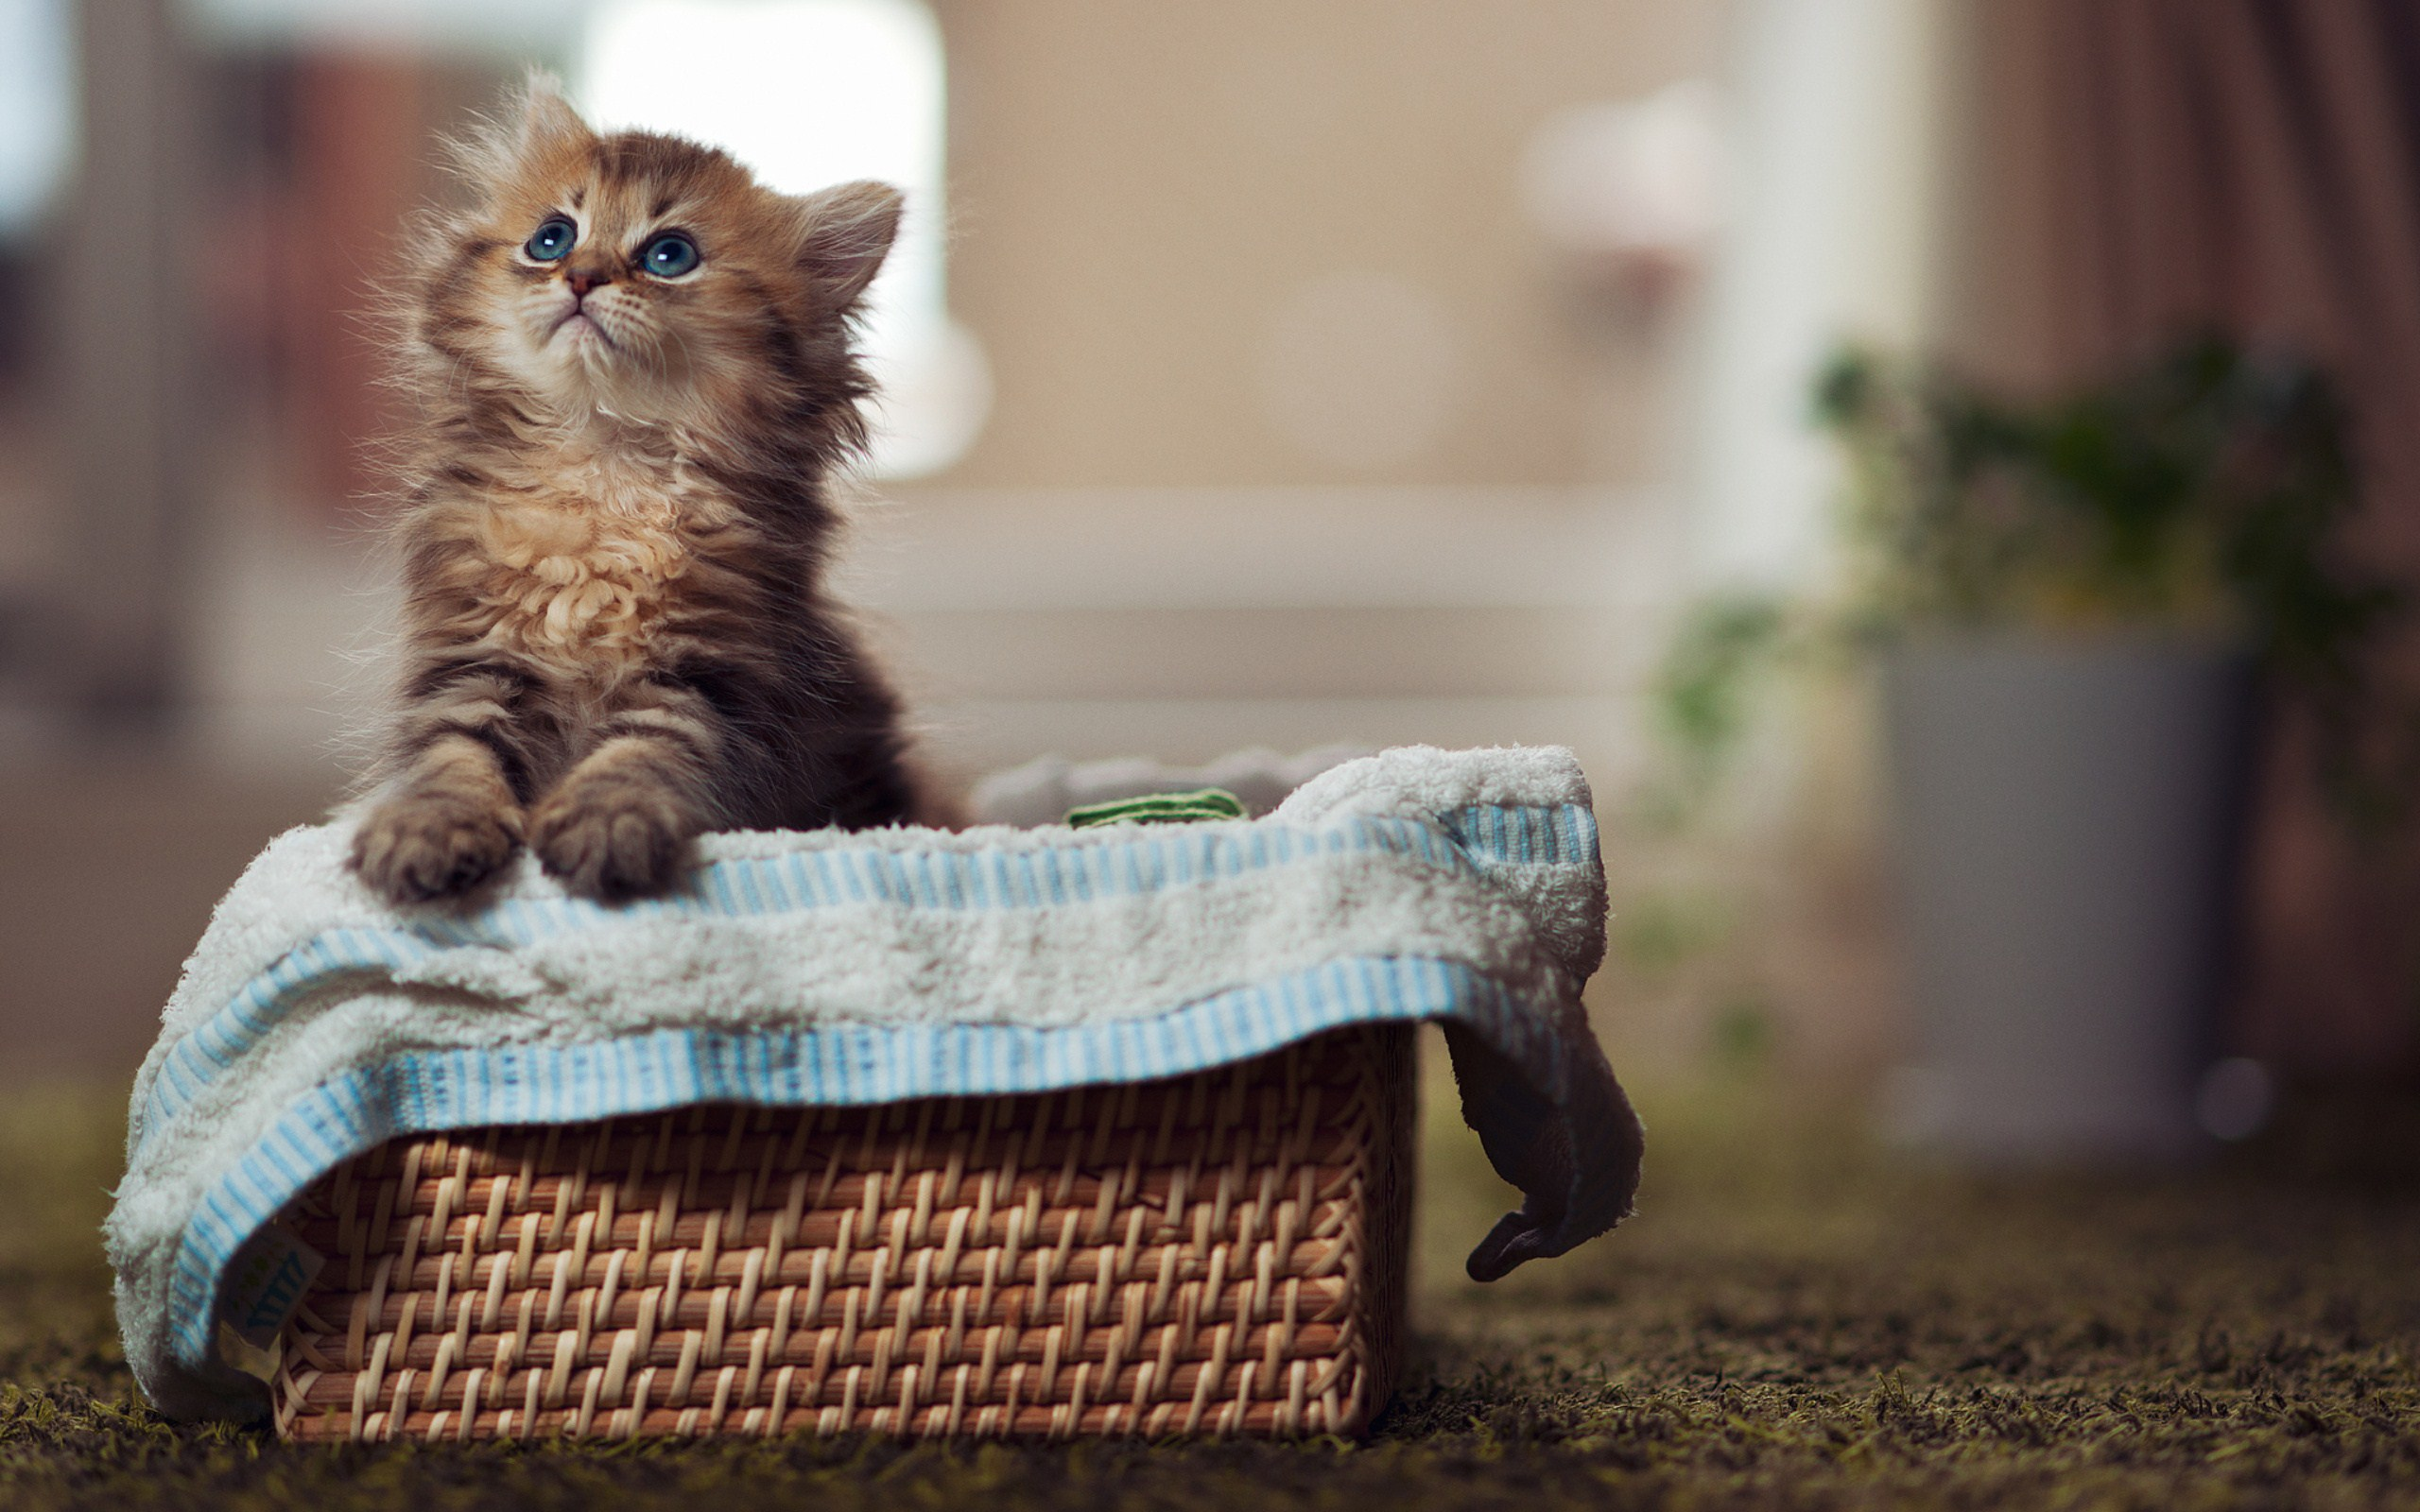 Cute Little Kitten Basket Blur Photo HD Wallpaper